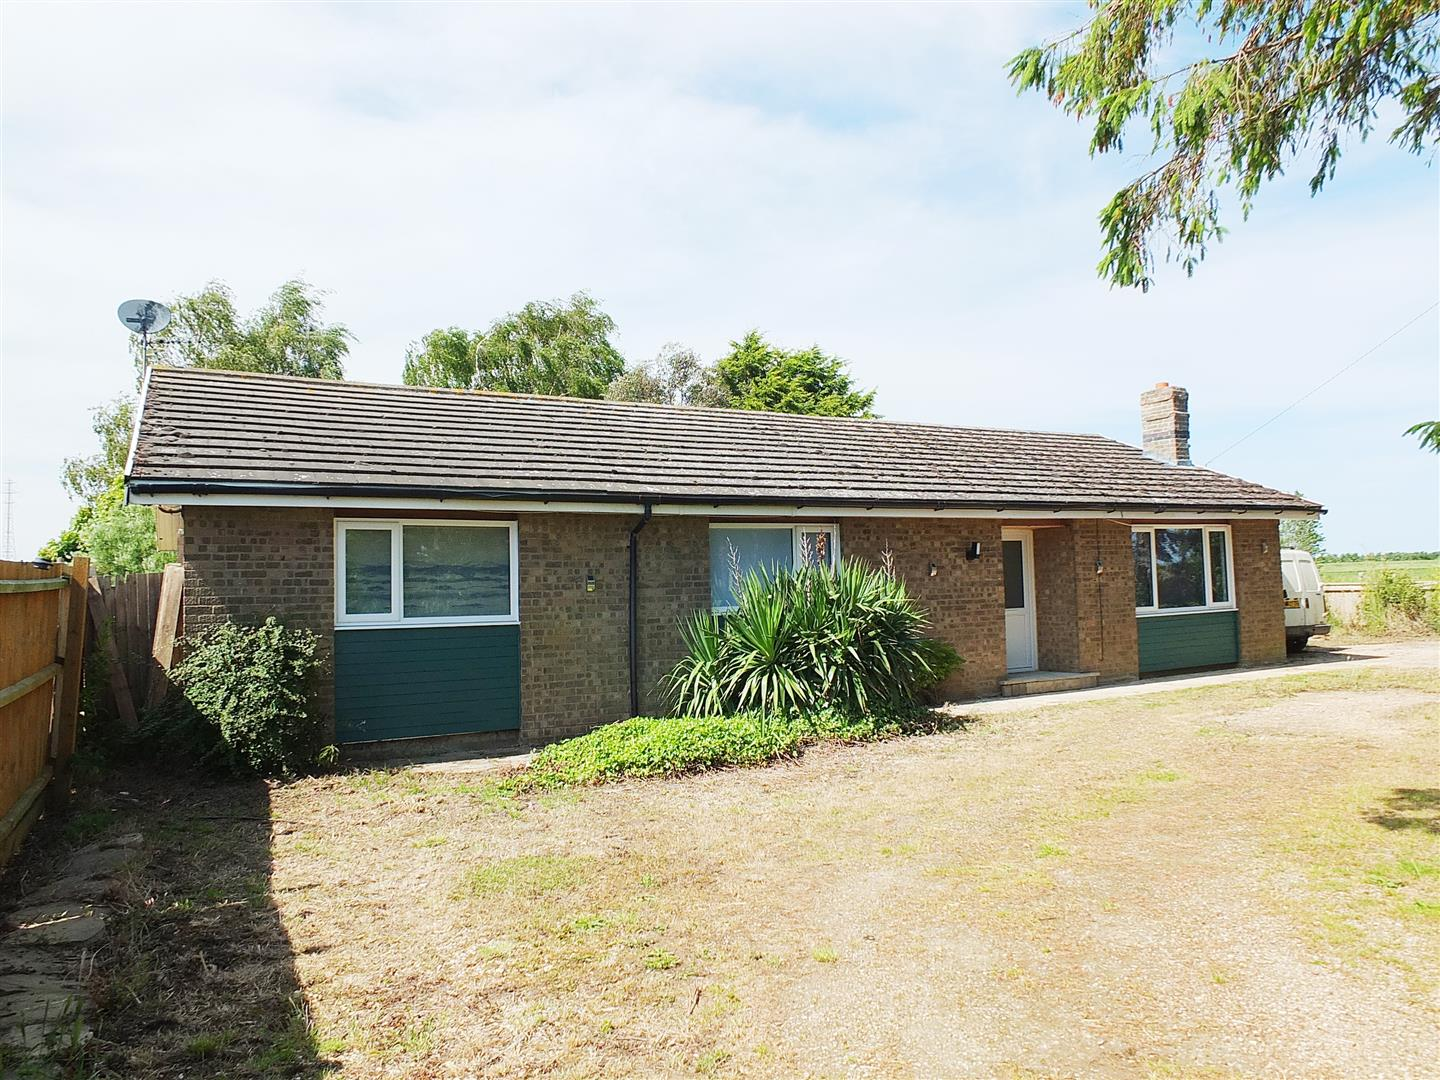 4 bed detached bungalow for sale in Moulton Marsh Spalding, PE12 6LL - Property Image 1